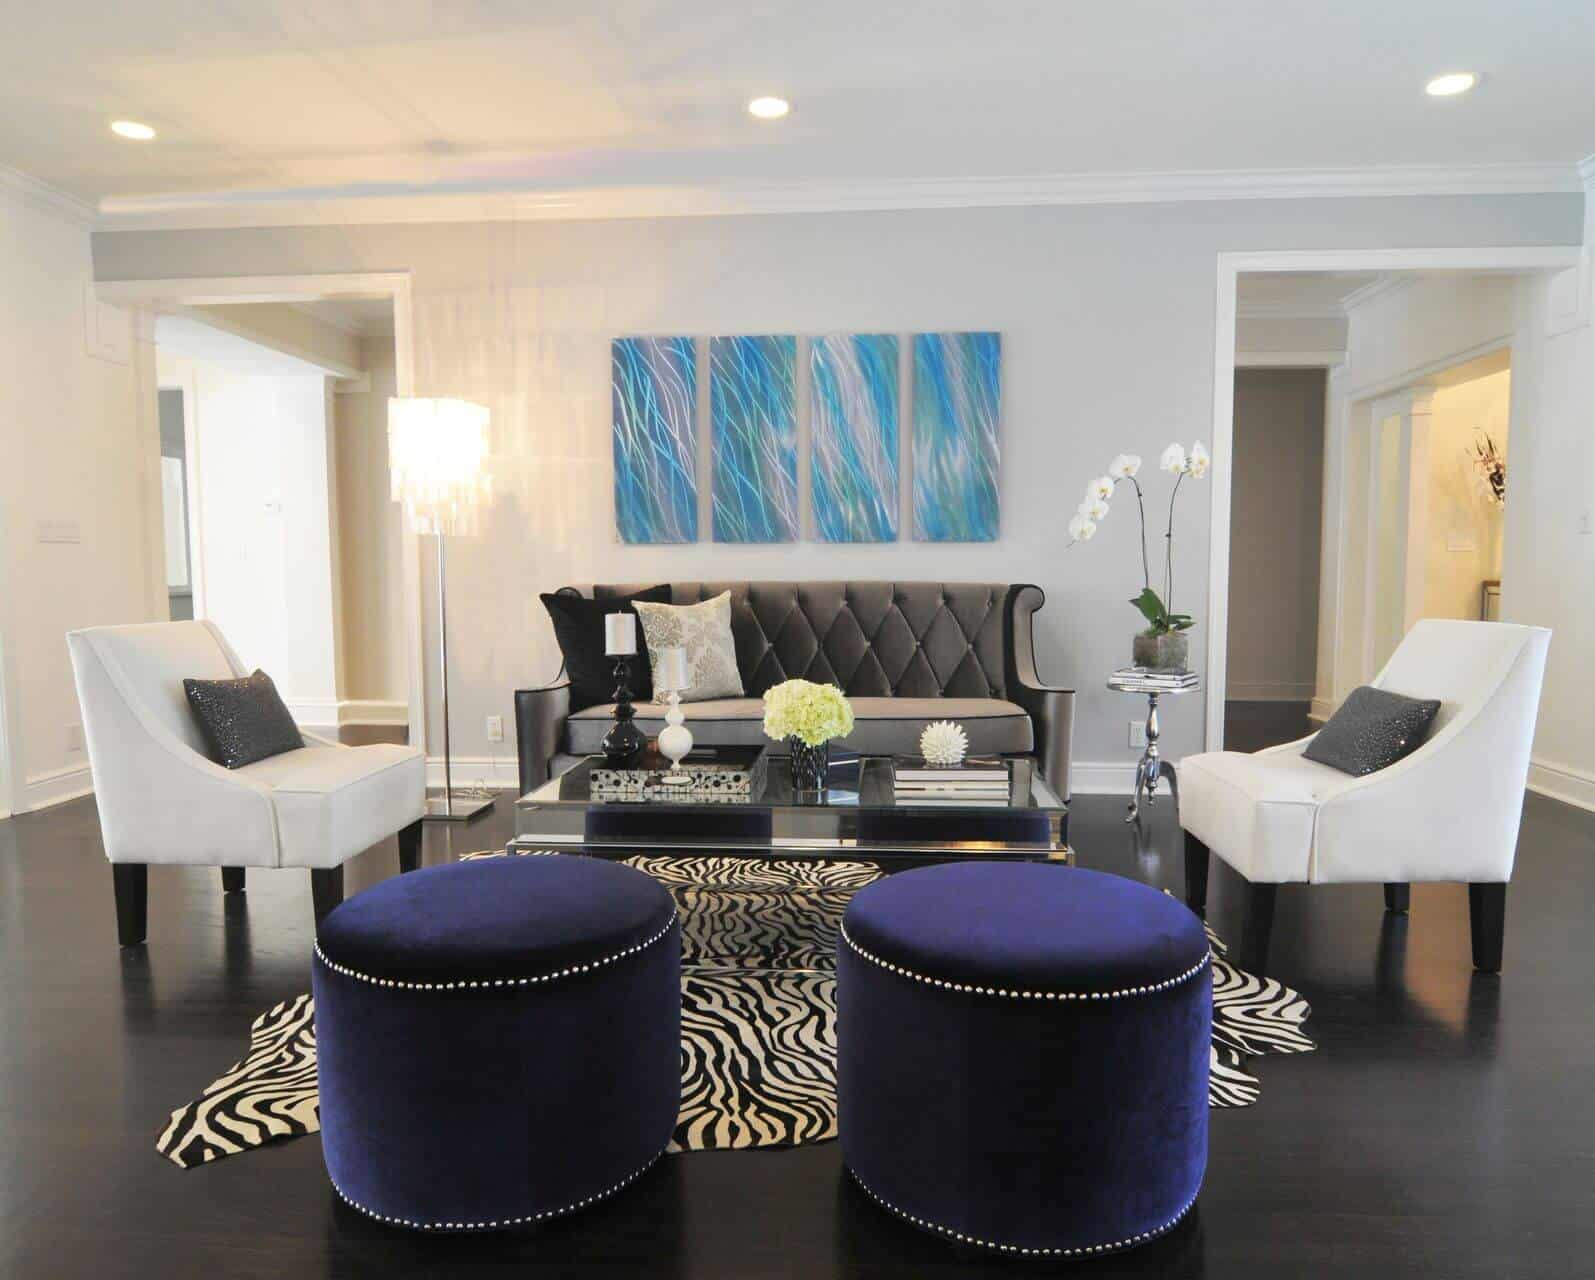 A living room boasting classy white and black seats with a pair of handsome-looking ottomans and a zebra rug.